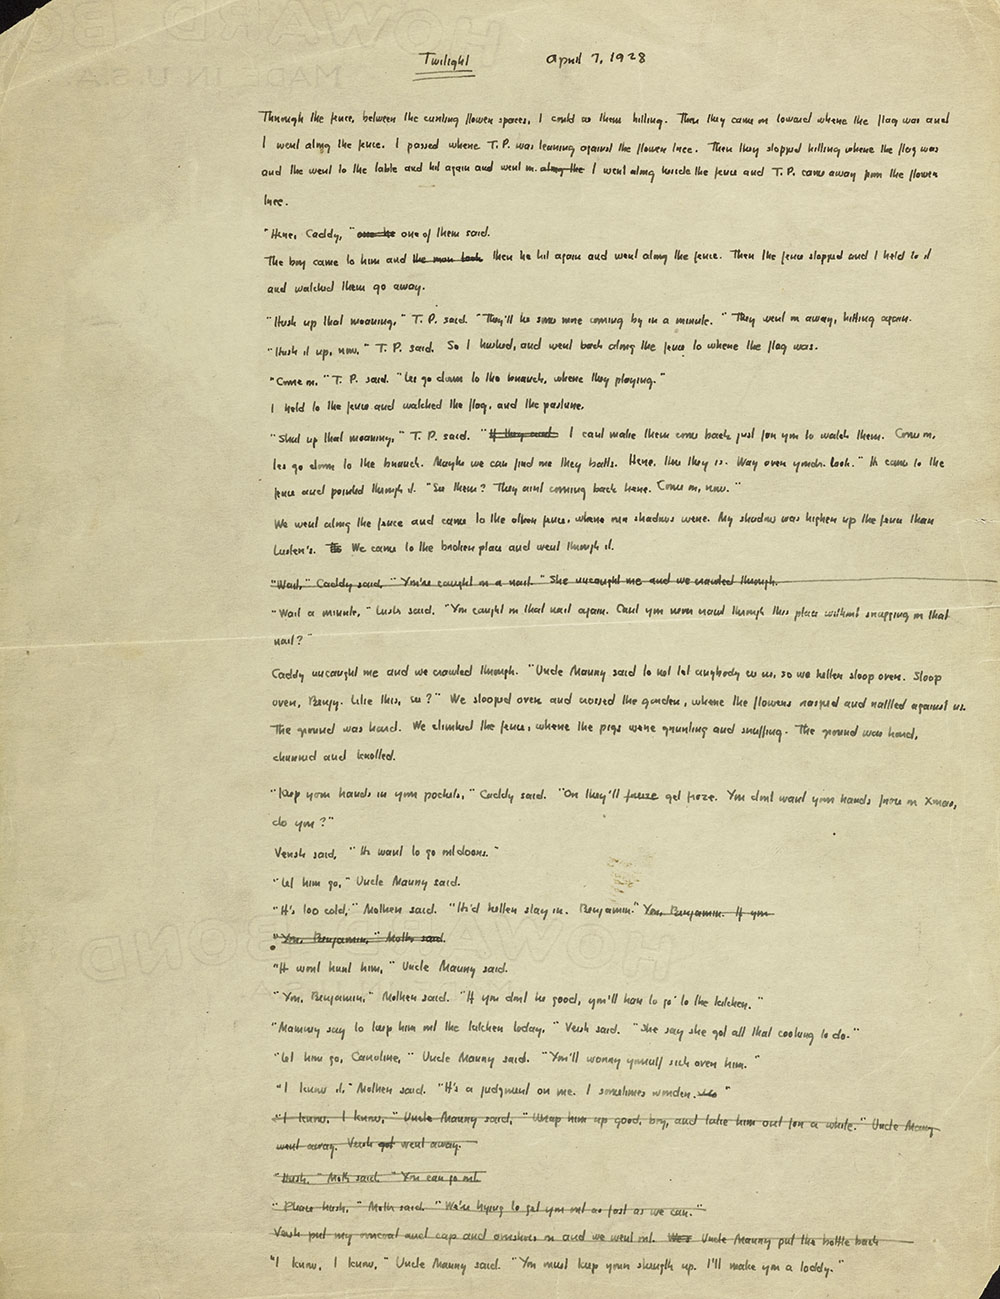 Page 1, The Sound and the Fury Ms